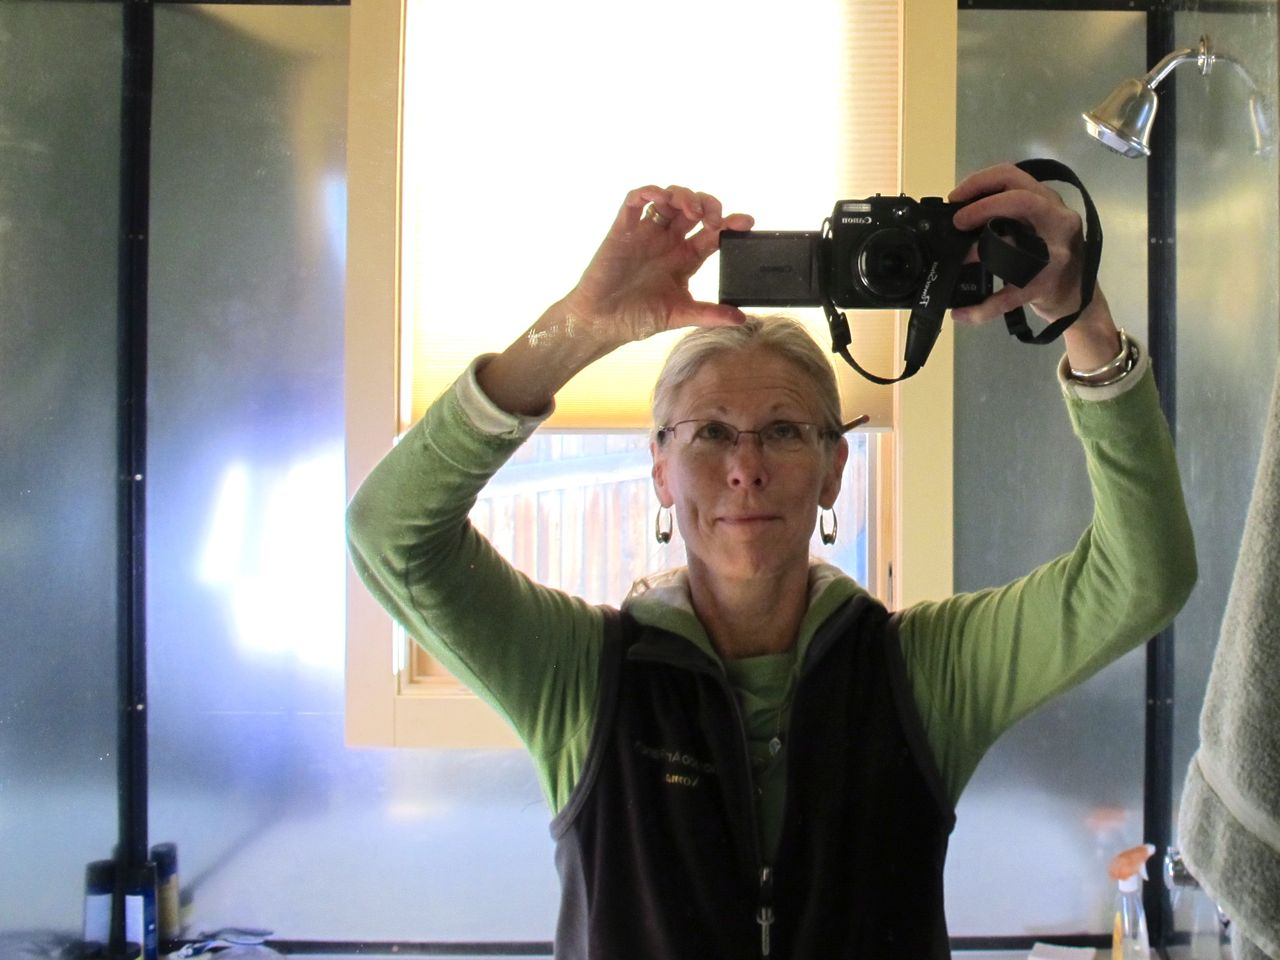 Self-portrait in the bathroom mirror: note the pencil behind the ear, a portent.